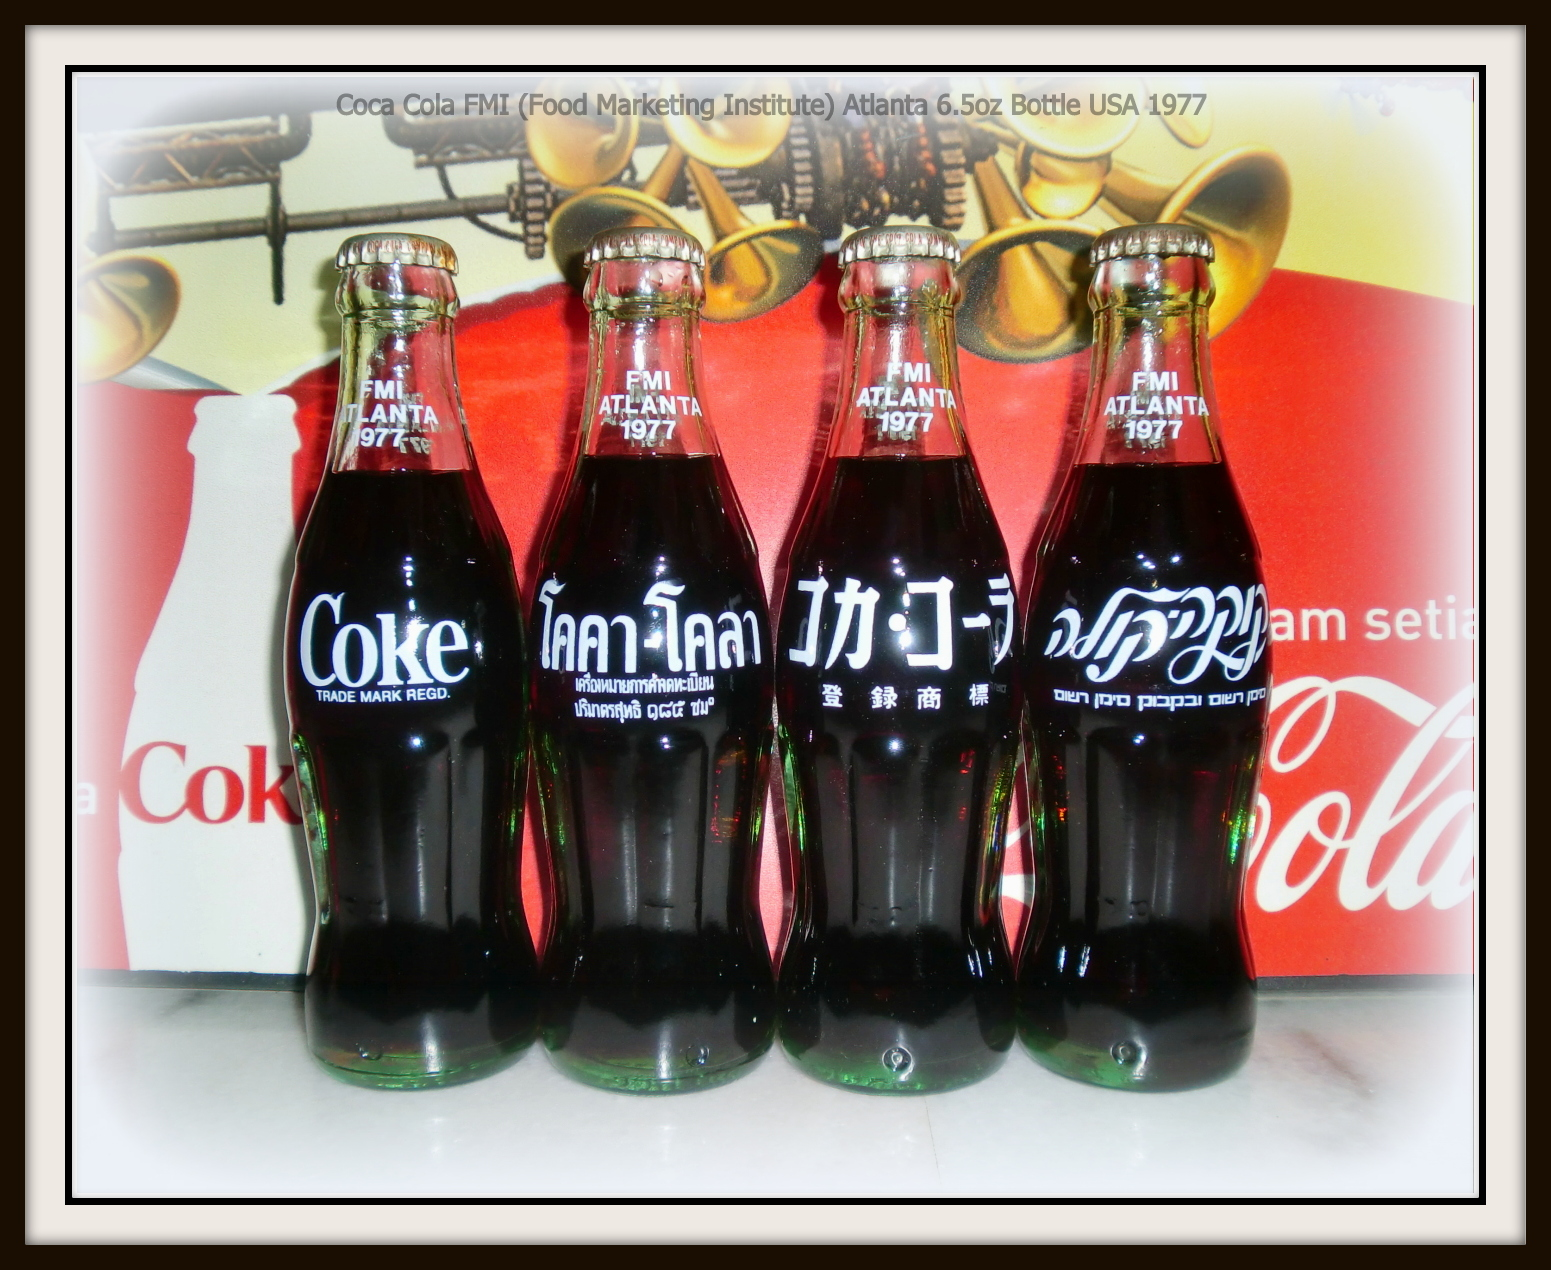 Chicago Coca Cola bottles for different ethnicities